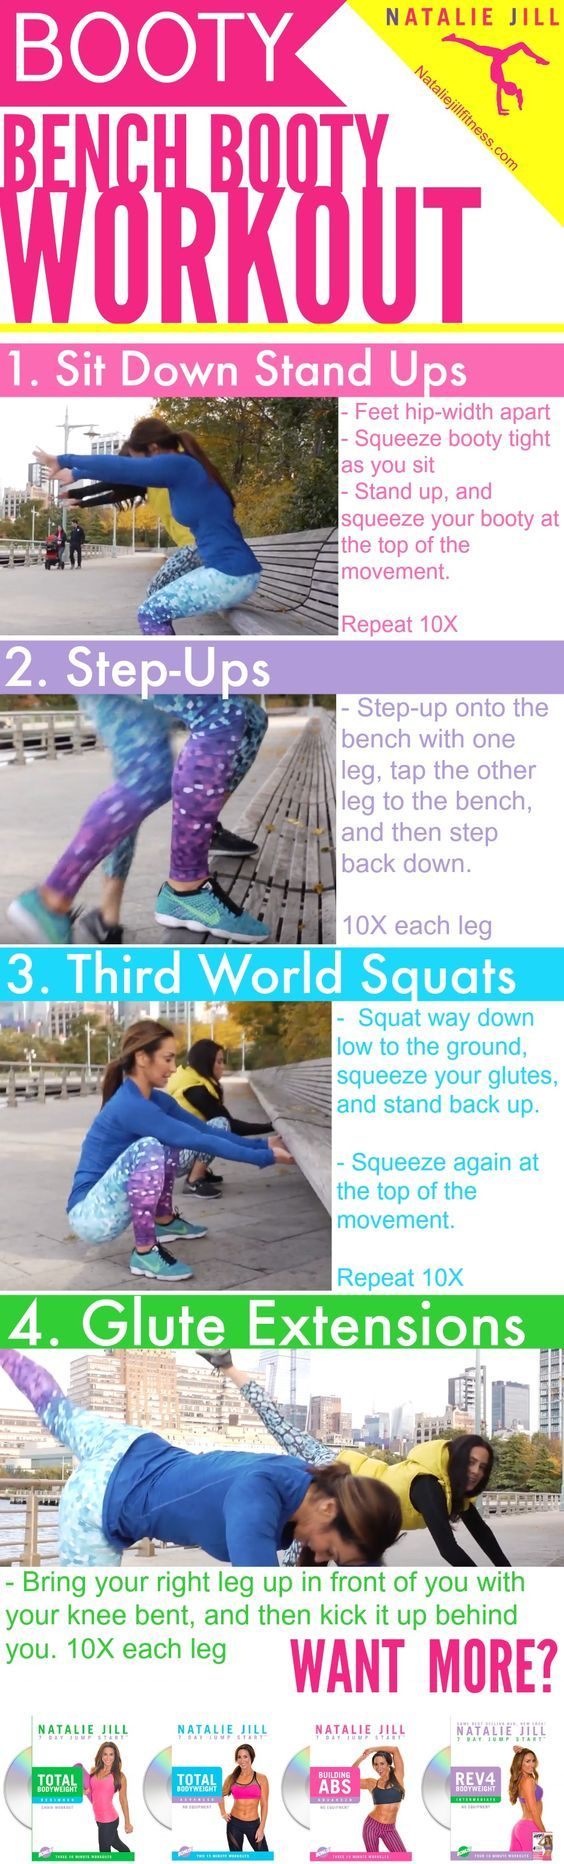 You can work that booty anywhere! To show you we took this workout to the streets of New York City! Click the image to watch the video.